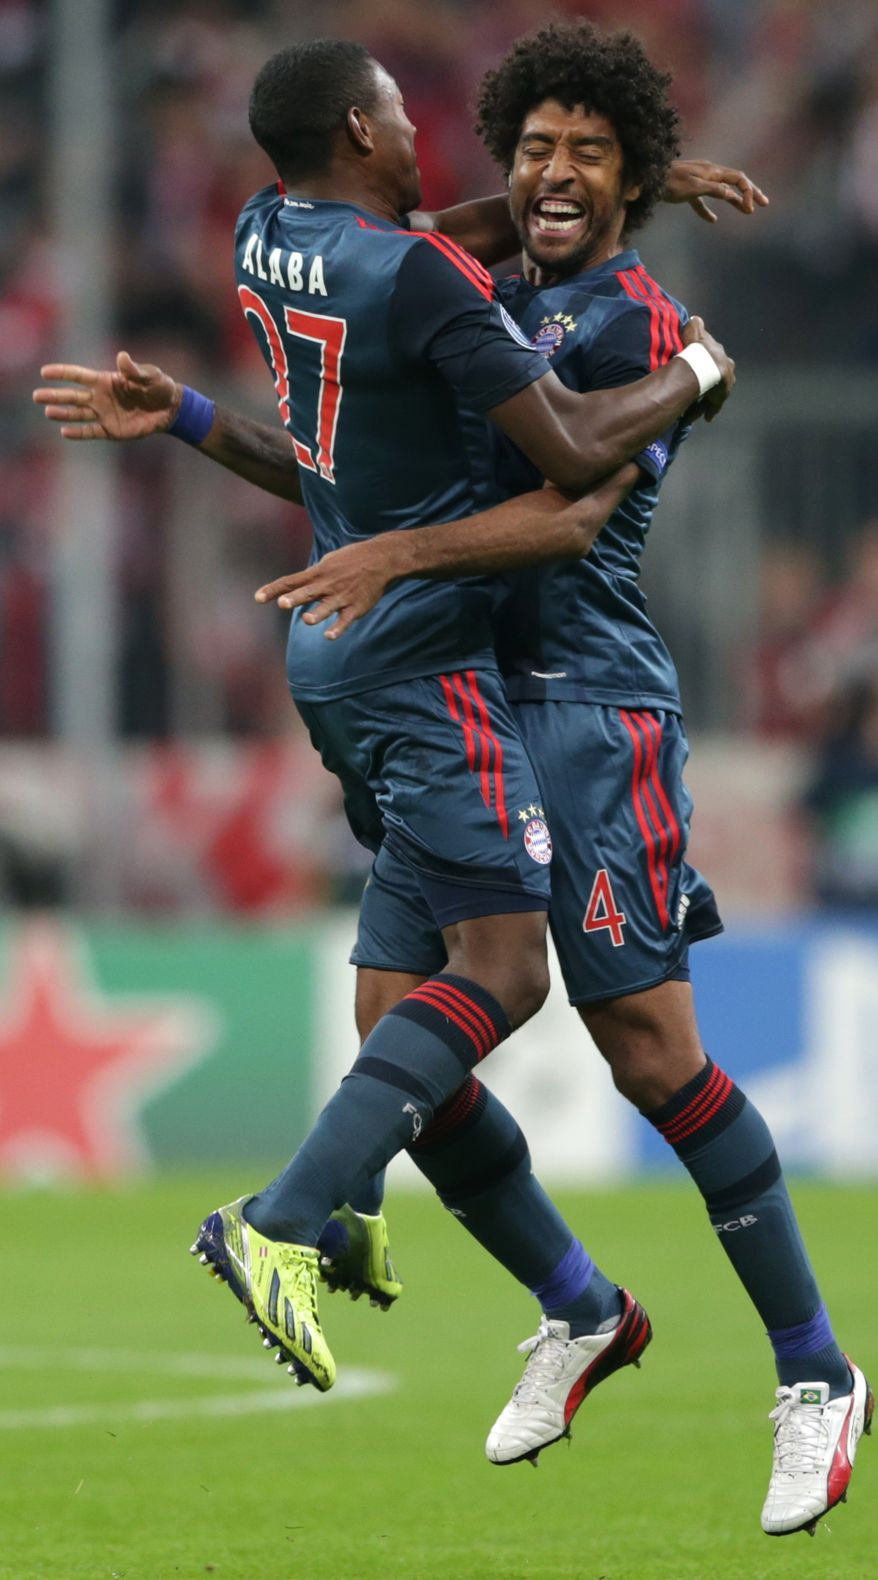 Bayern's David Alaba of Austria, left, and teammate Dante of Brazil celebrate after scoring their side's opening goal during the Champions League first round group D soccer match between FC Bayern Munich and CSKA Moscow, in Munich, Germany, Tuesday, Sept. 17, 2013. (AP Photo/Matthias Schrader)